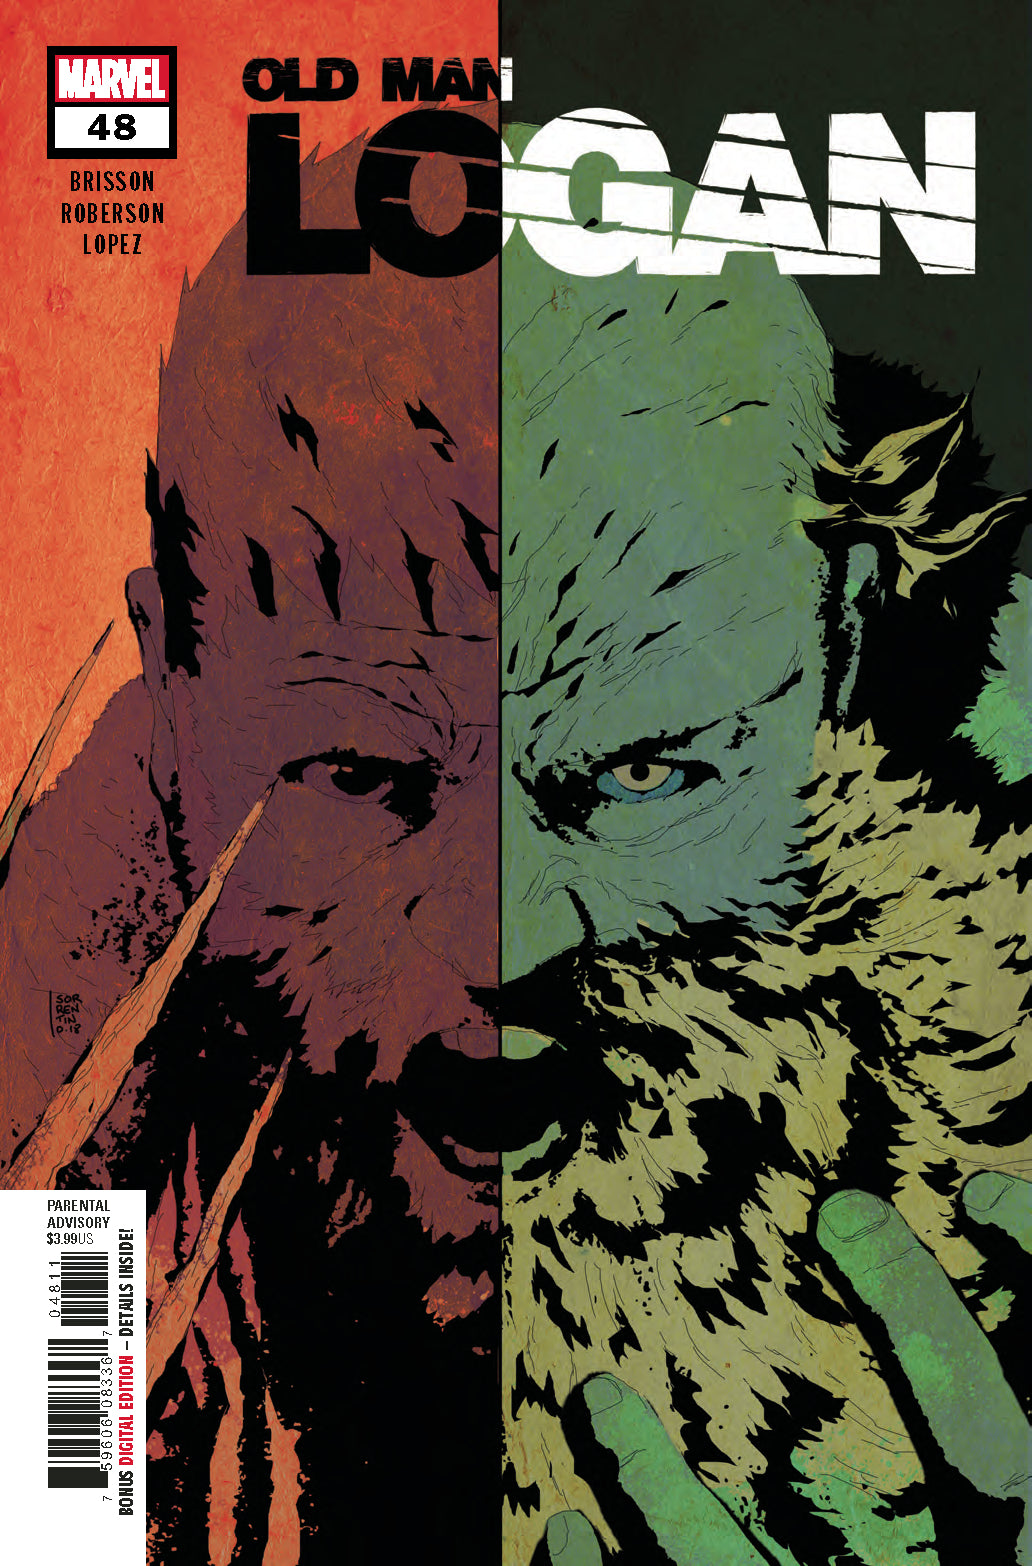 Old Man Logan #48